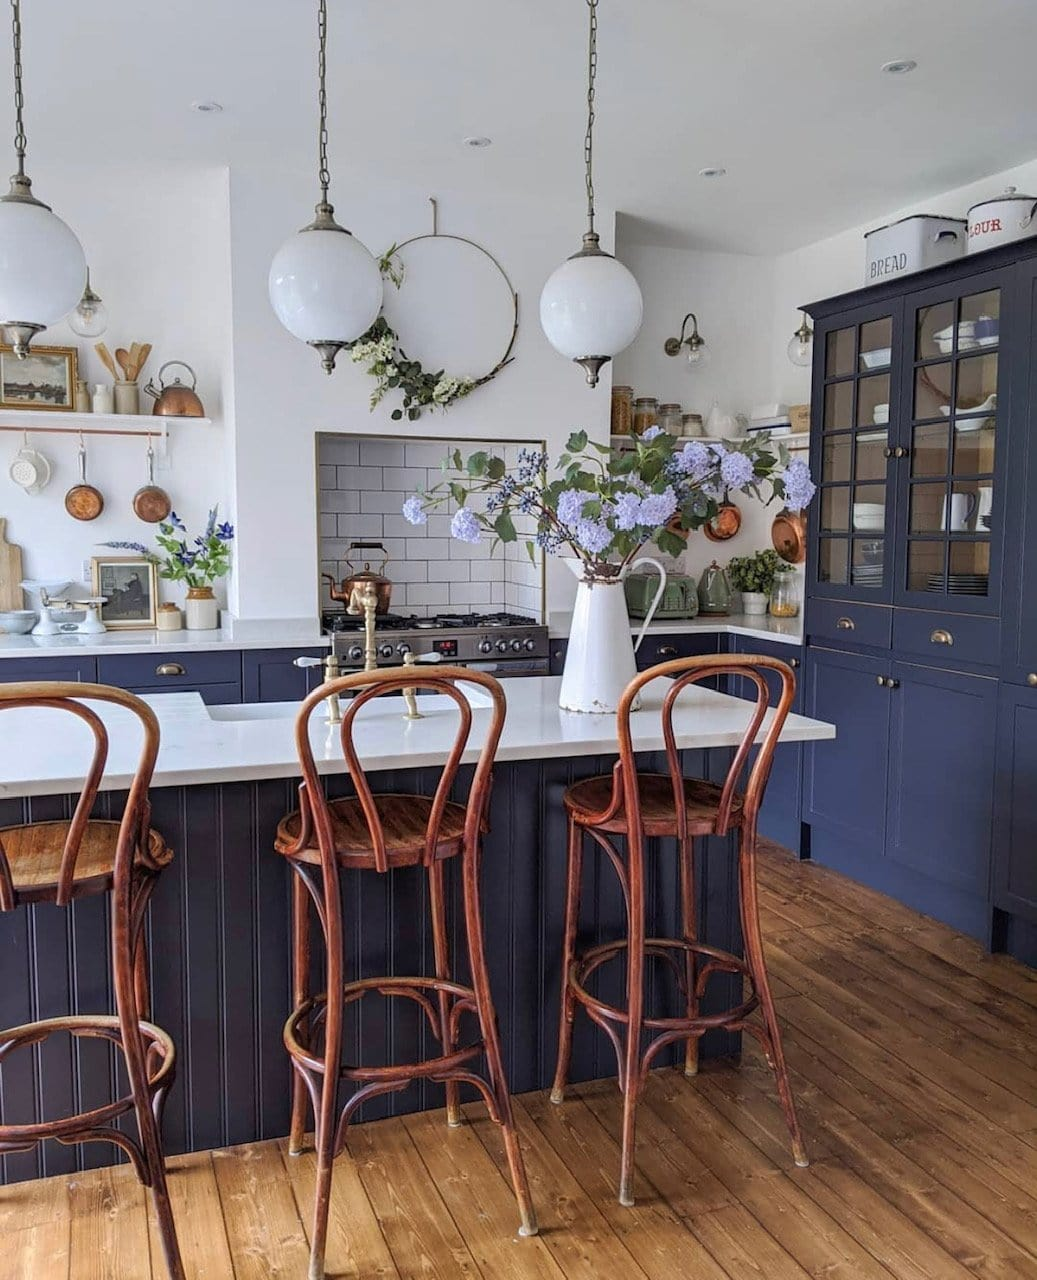 How I Would Improve My Kitchen (If It Didn't End in Divorce)